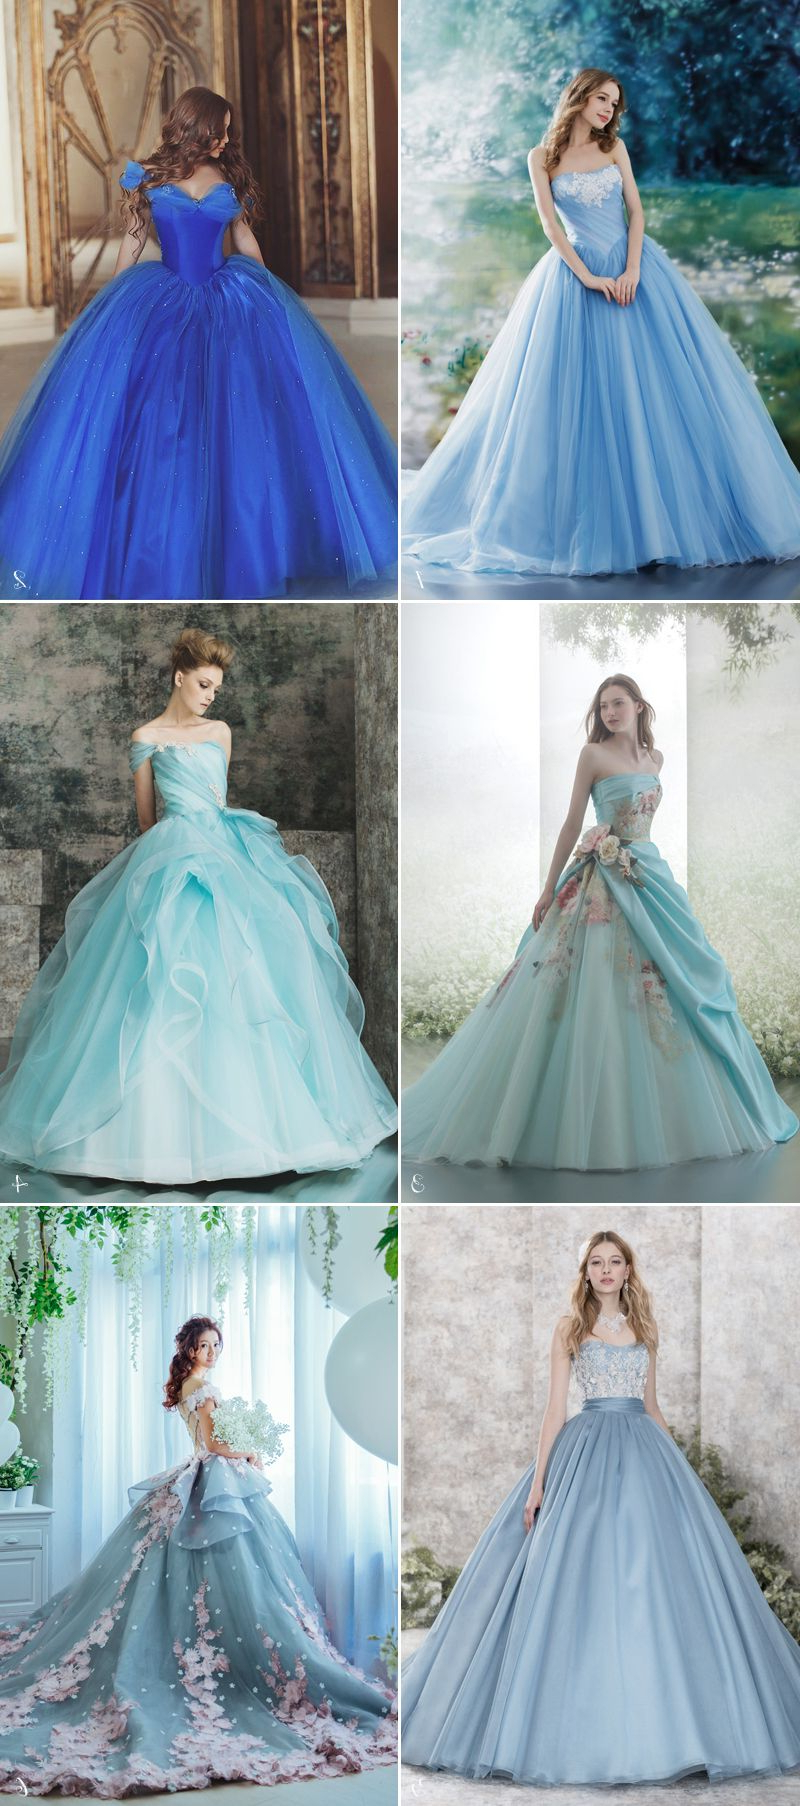 Newest Sleek And Big Princess Ball Gown Updos For Brides Pertaining To 42 Fairy Tale Wedding Dresses For The Disney Princess Bride (View 9 of 20)